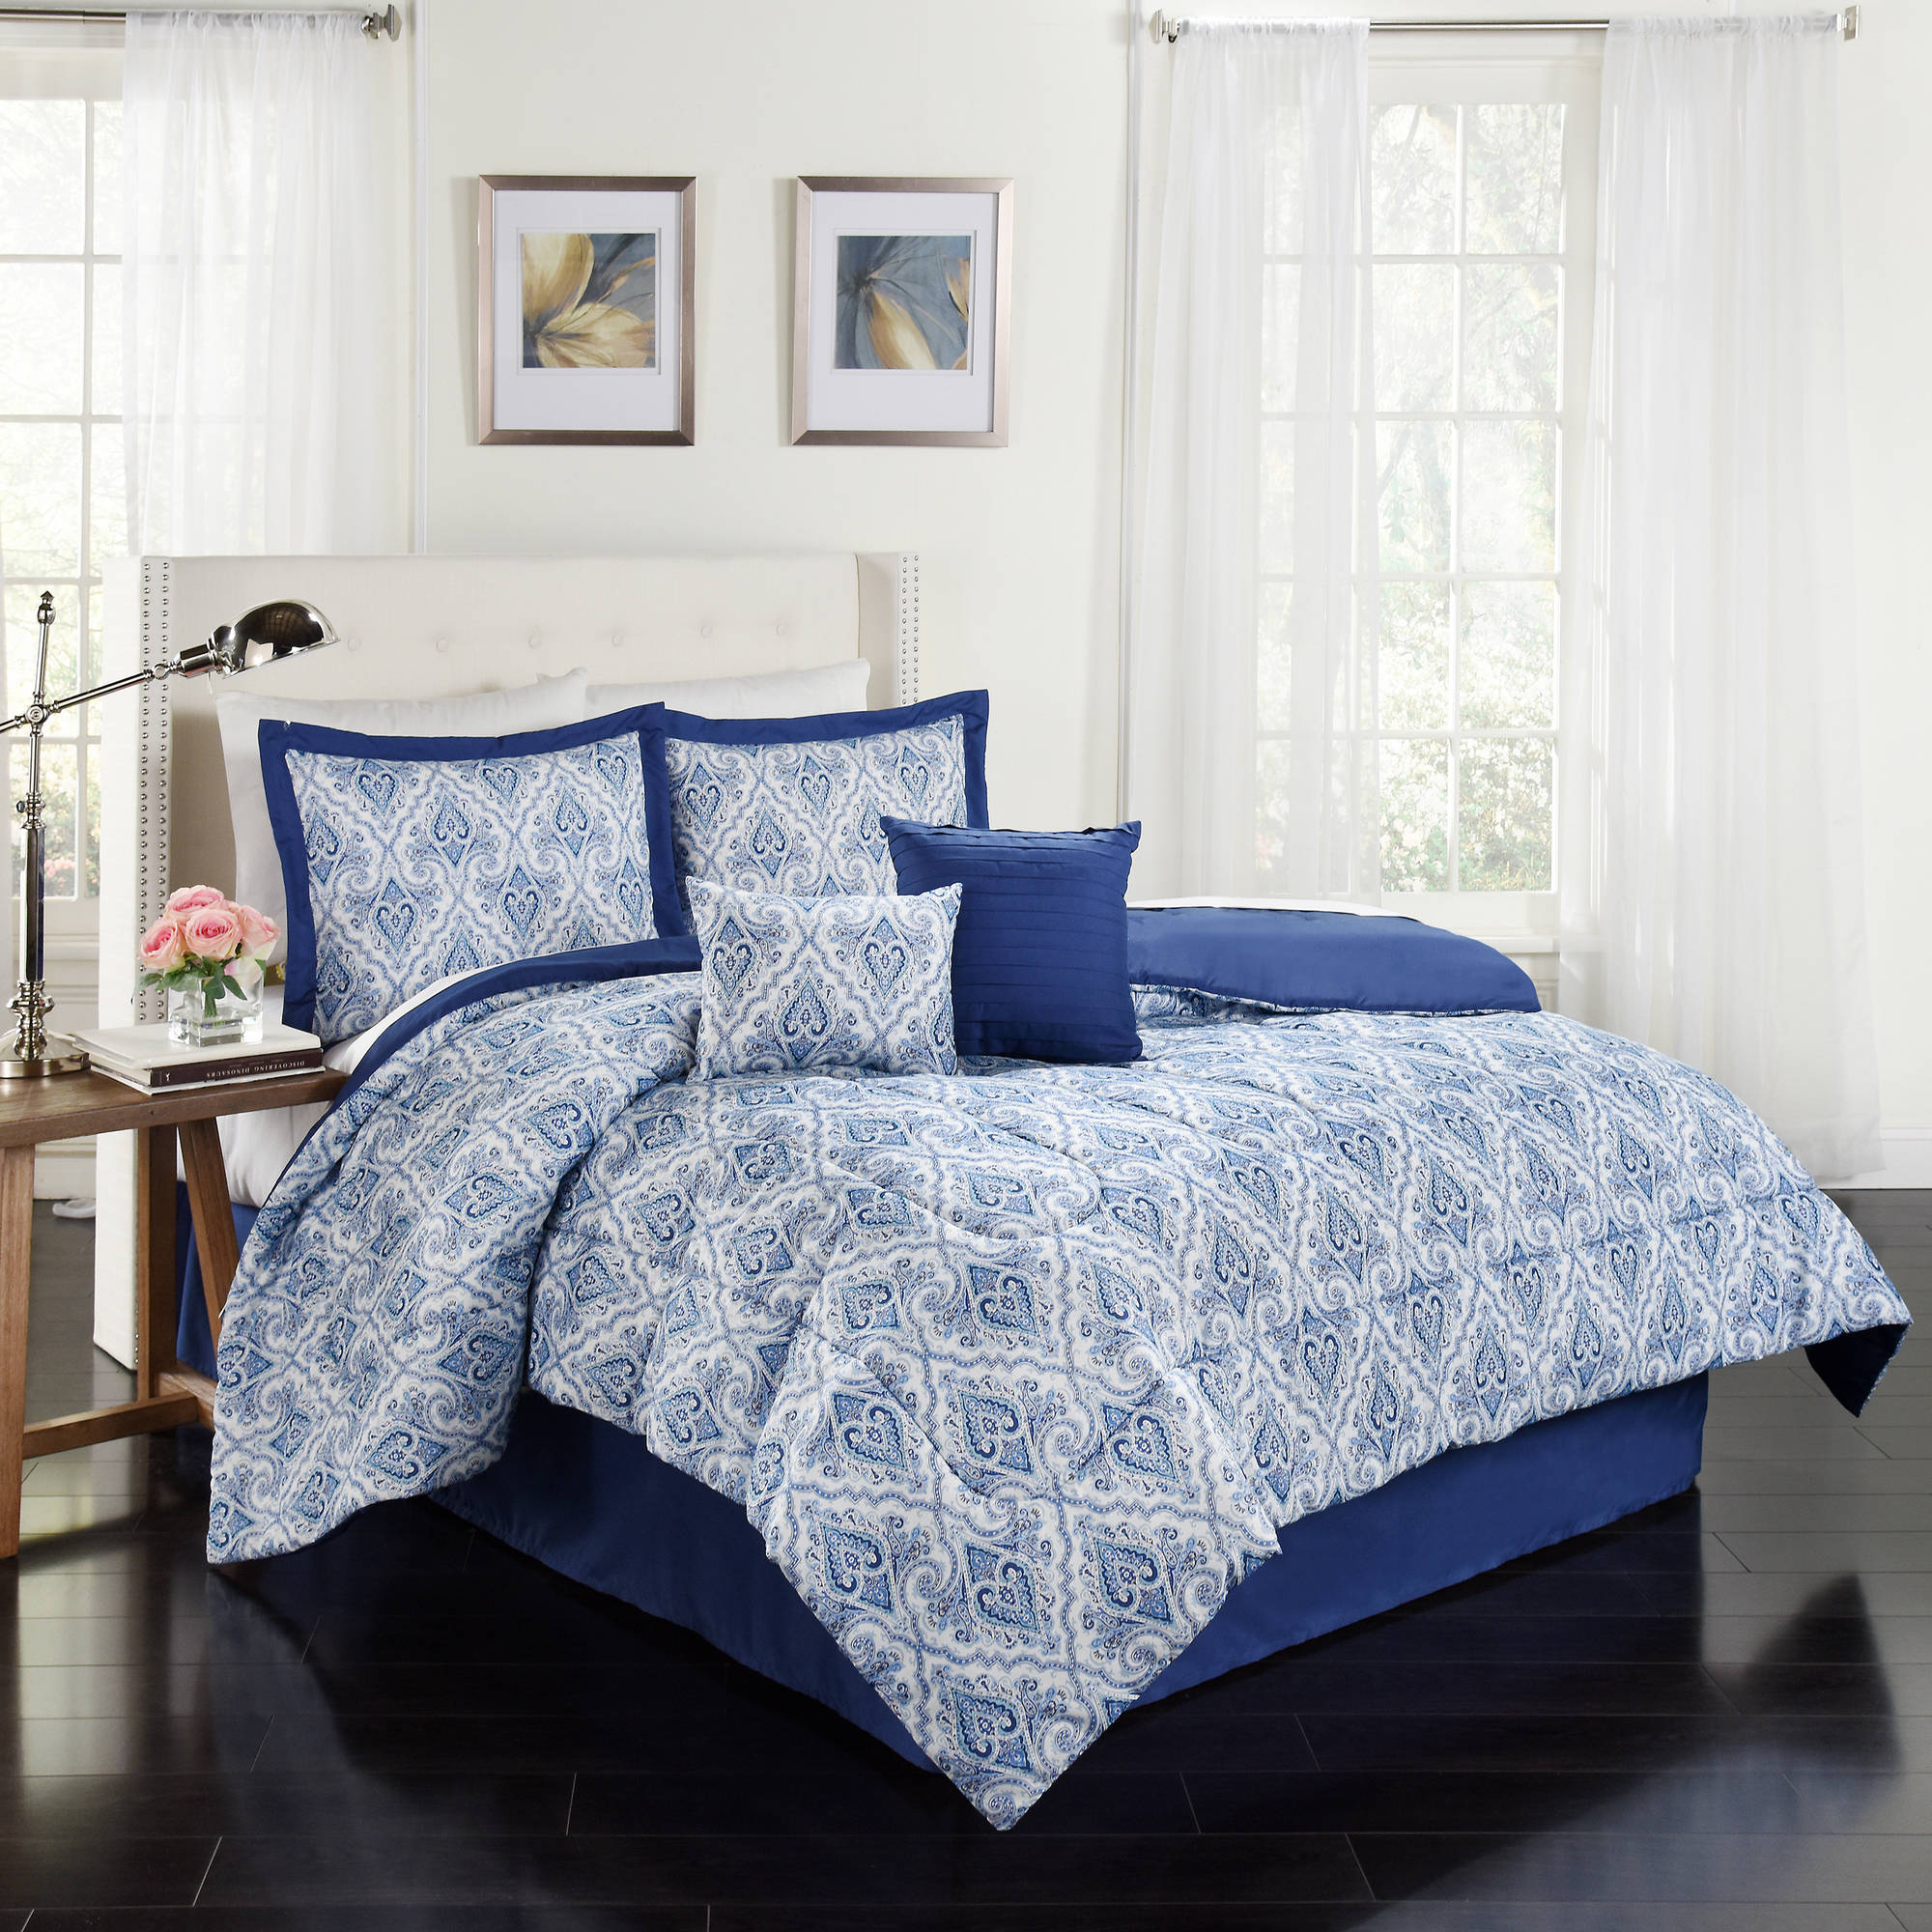 traditions by waverly anatalya 6piece comforter collection walmartcom - Waverly Bedding